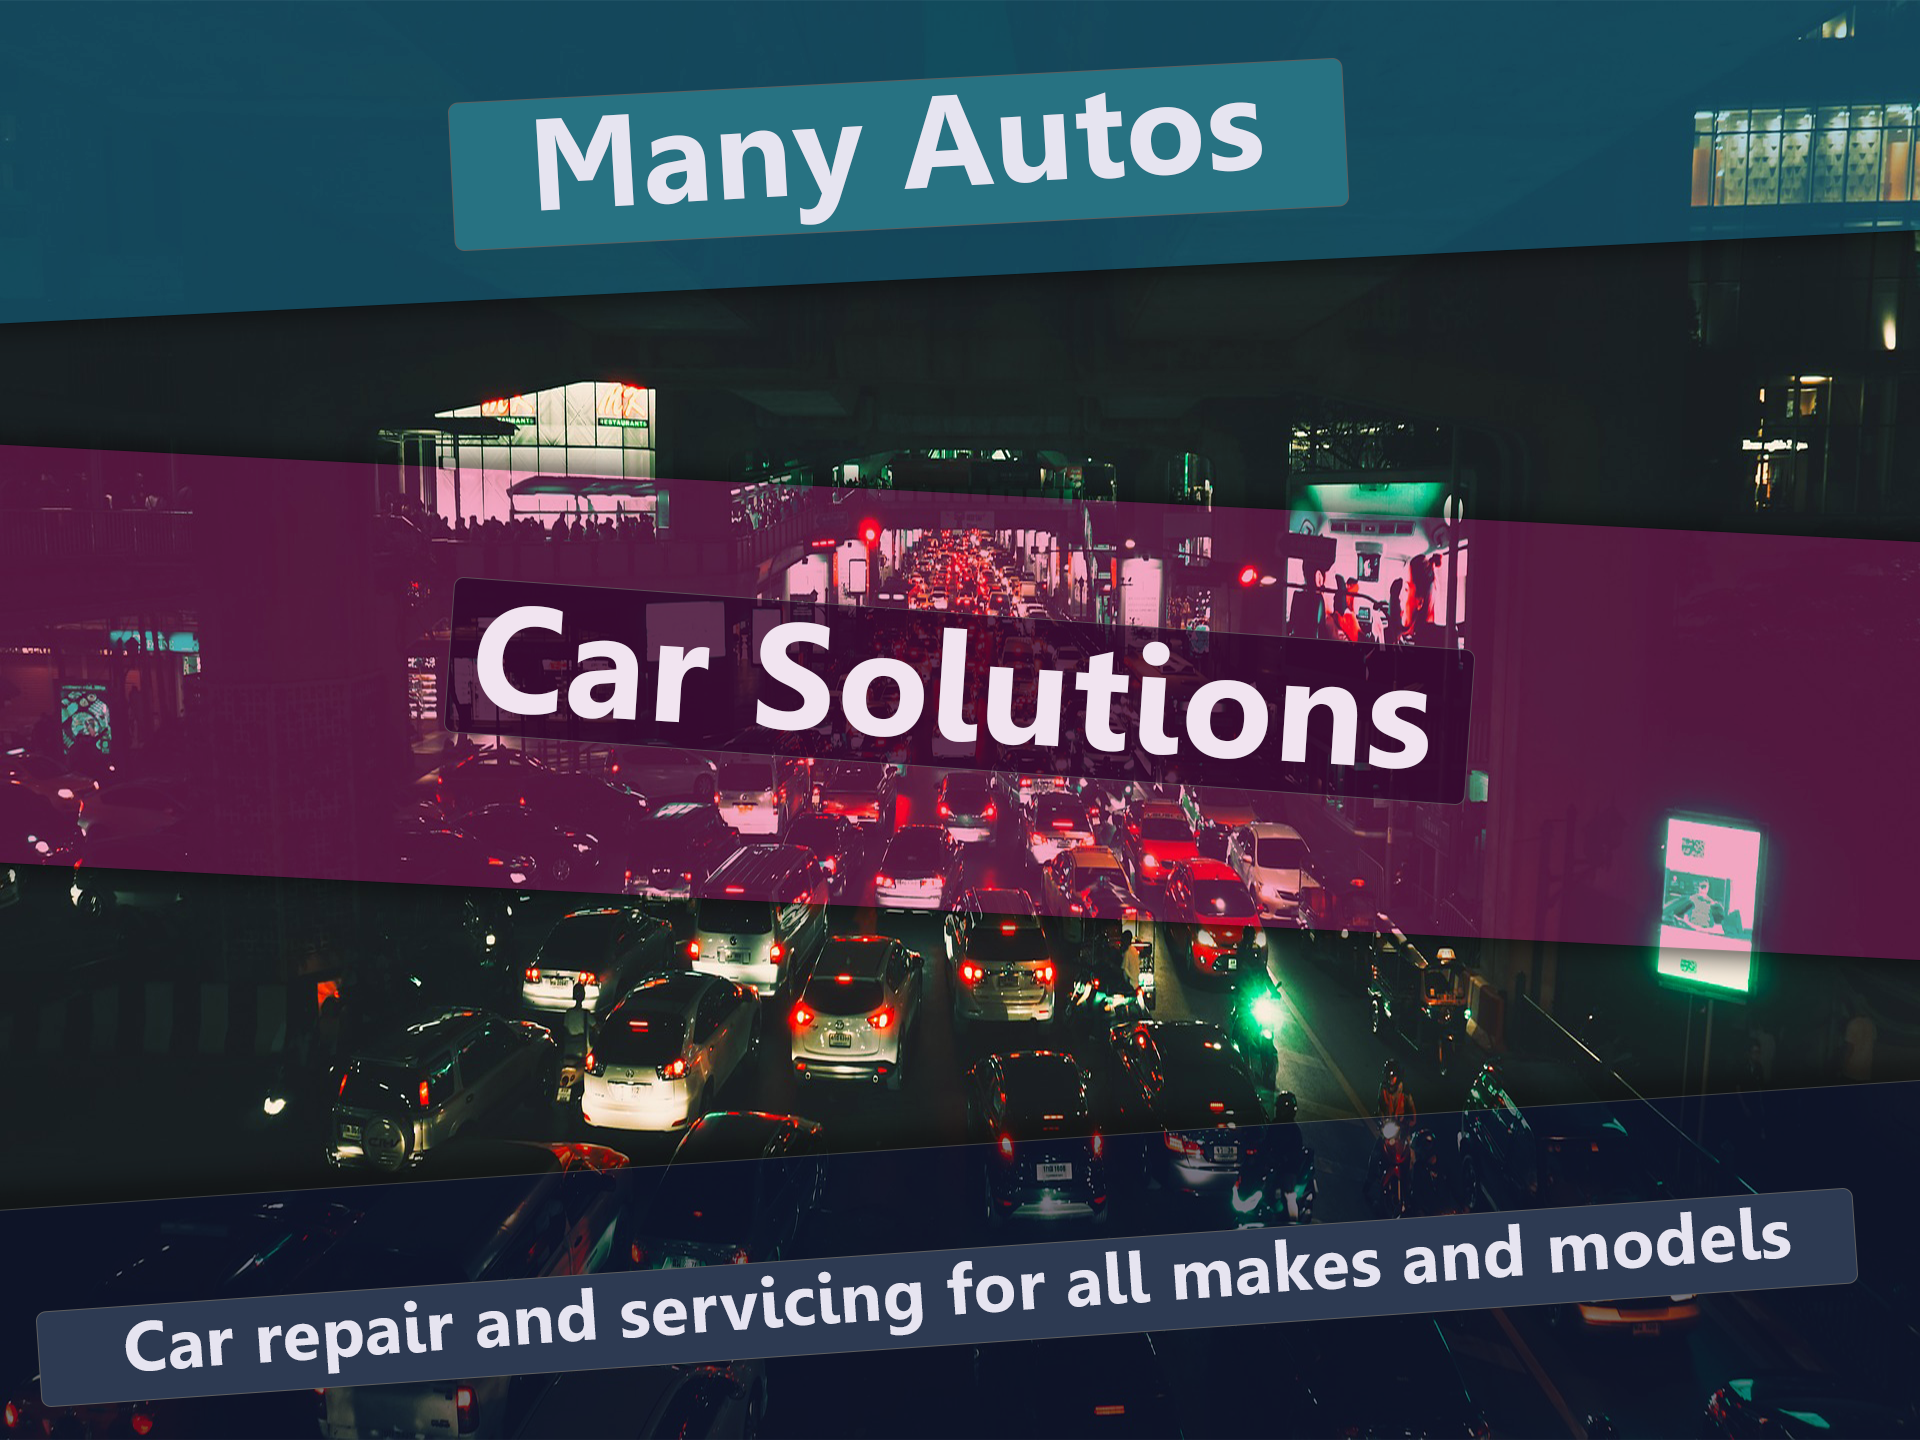 Many Autos All In One Car Solutions We offer car repair